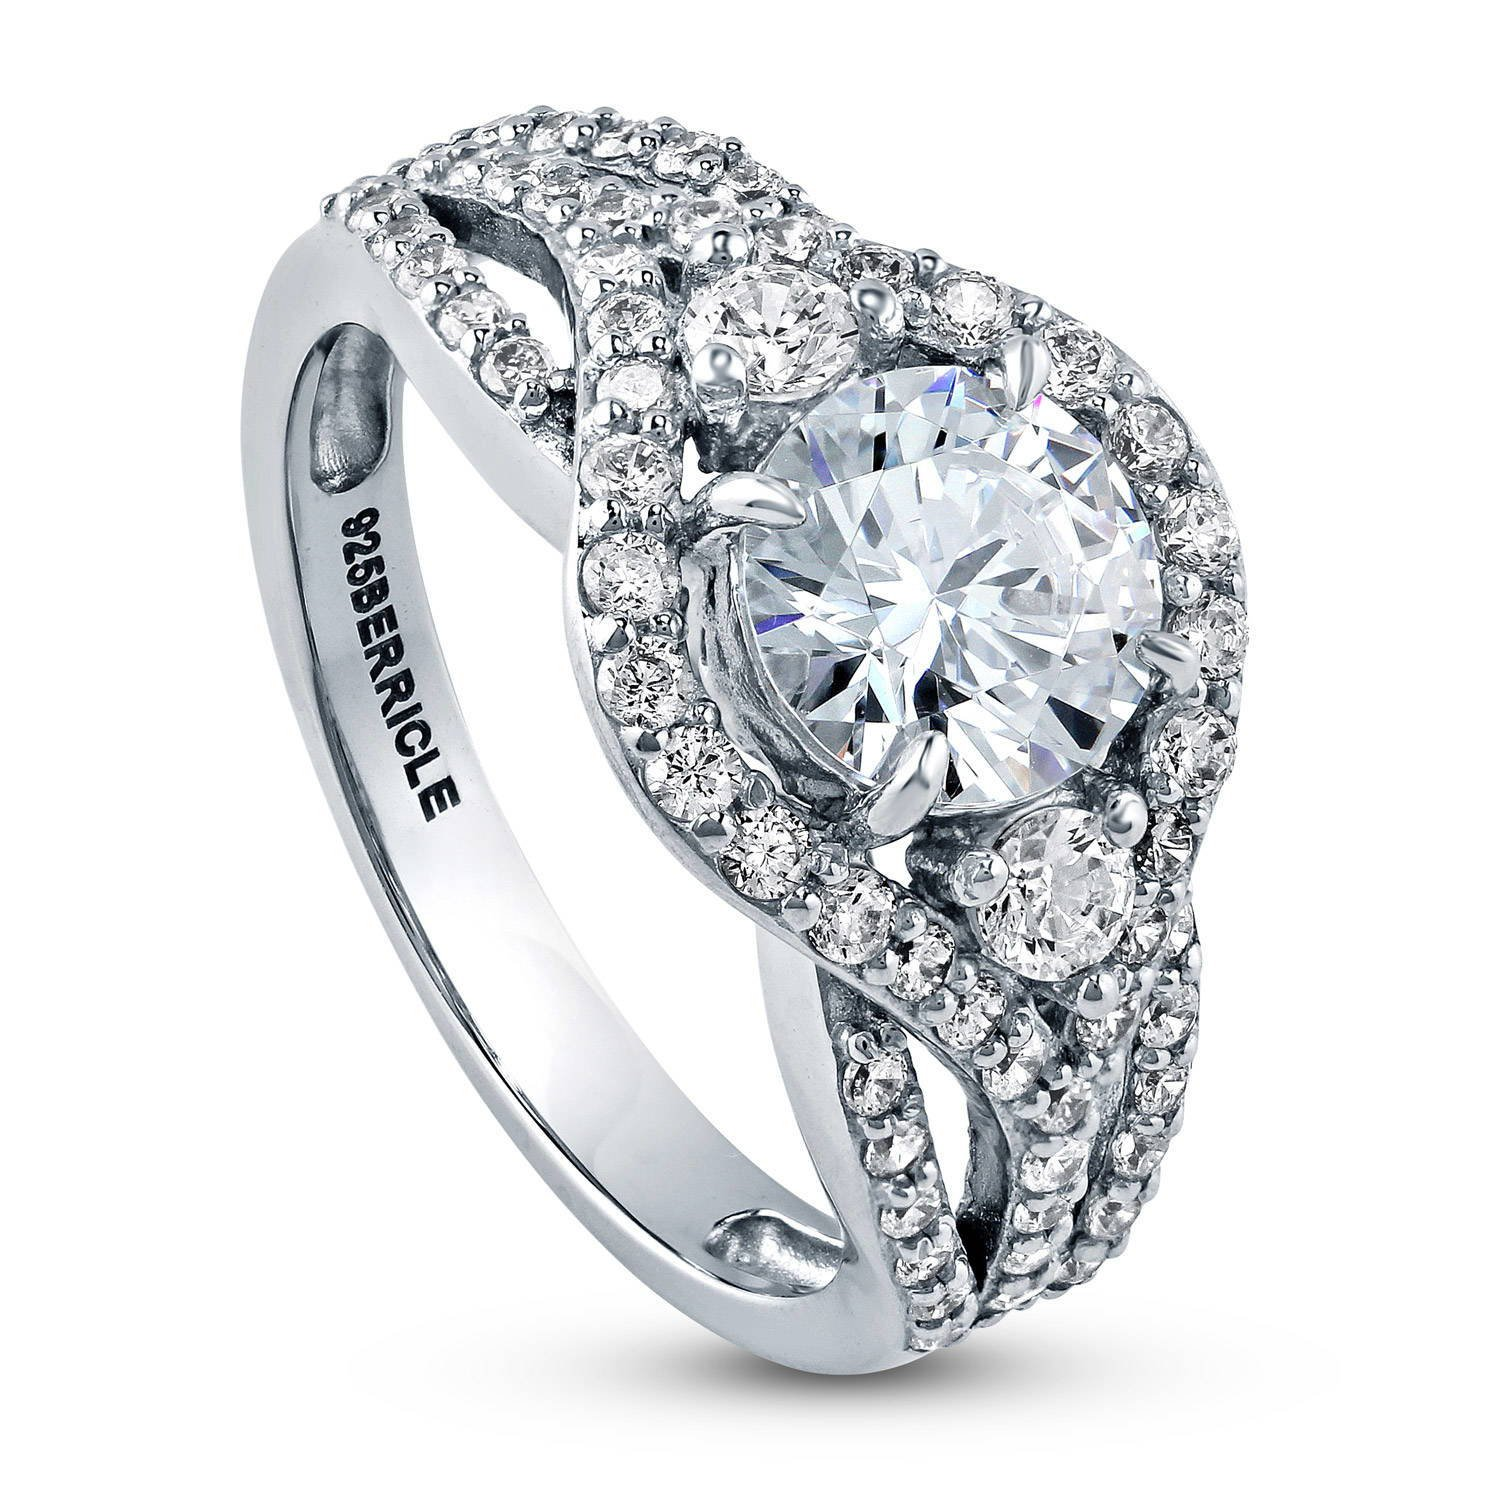 BERRICLE Rhodium Plated Silver Cubic Zirconia CZ Halo 3-Stone Engagement Ring 2.08 CTW Size 9.5